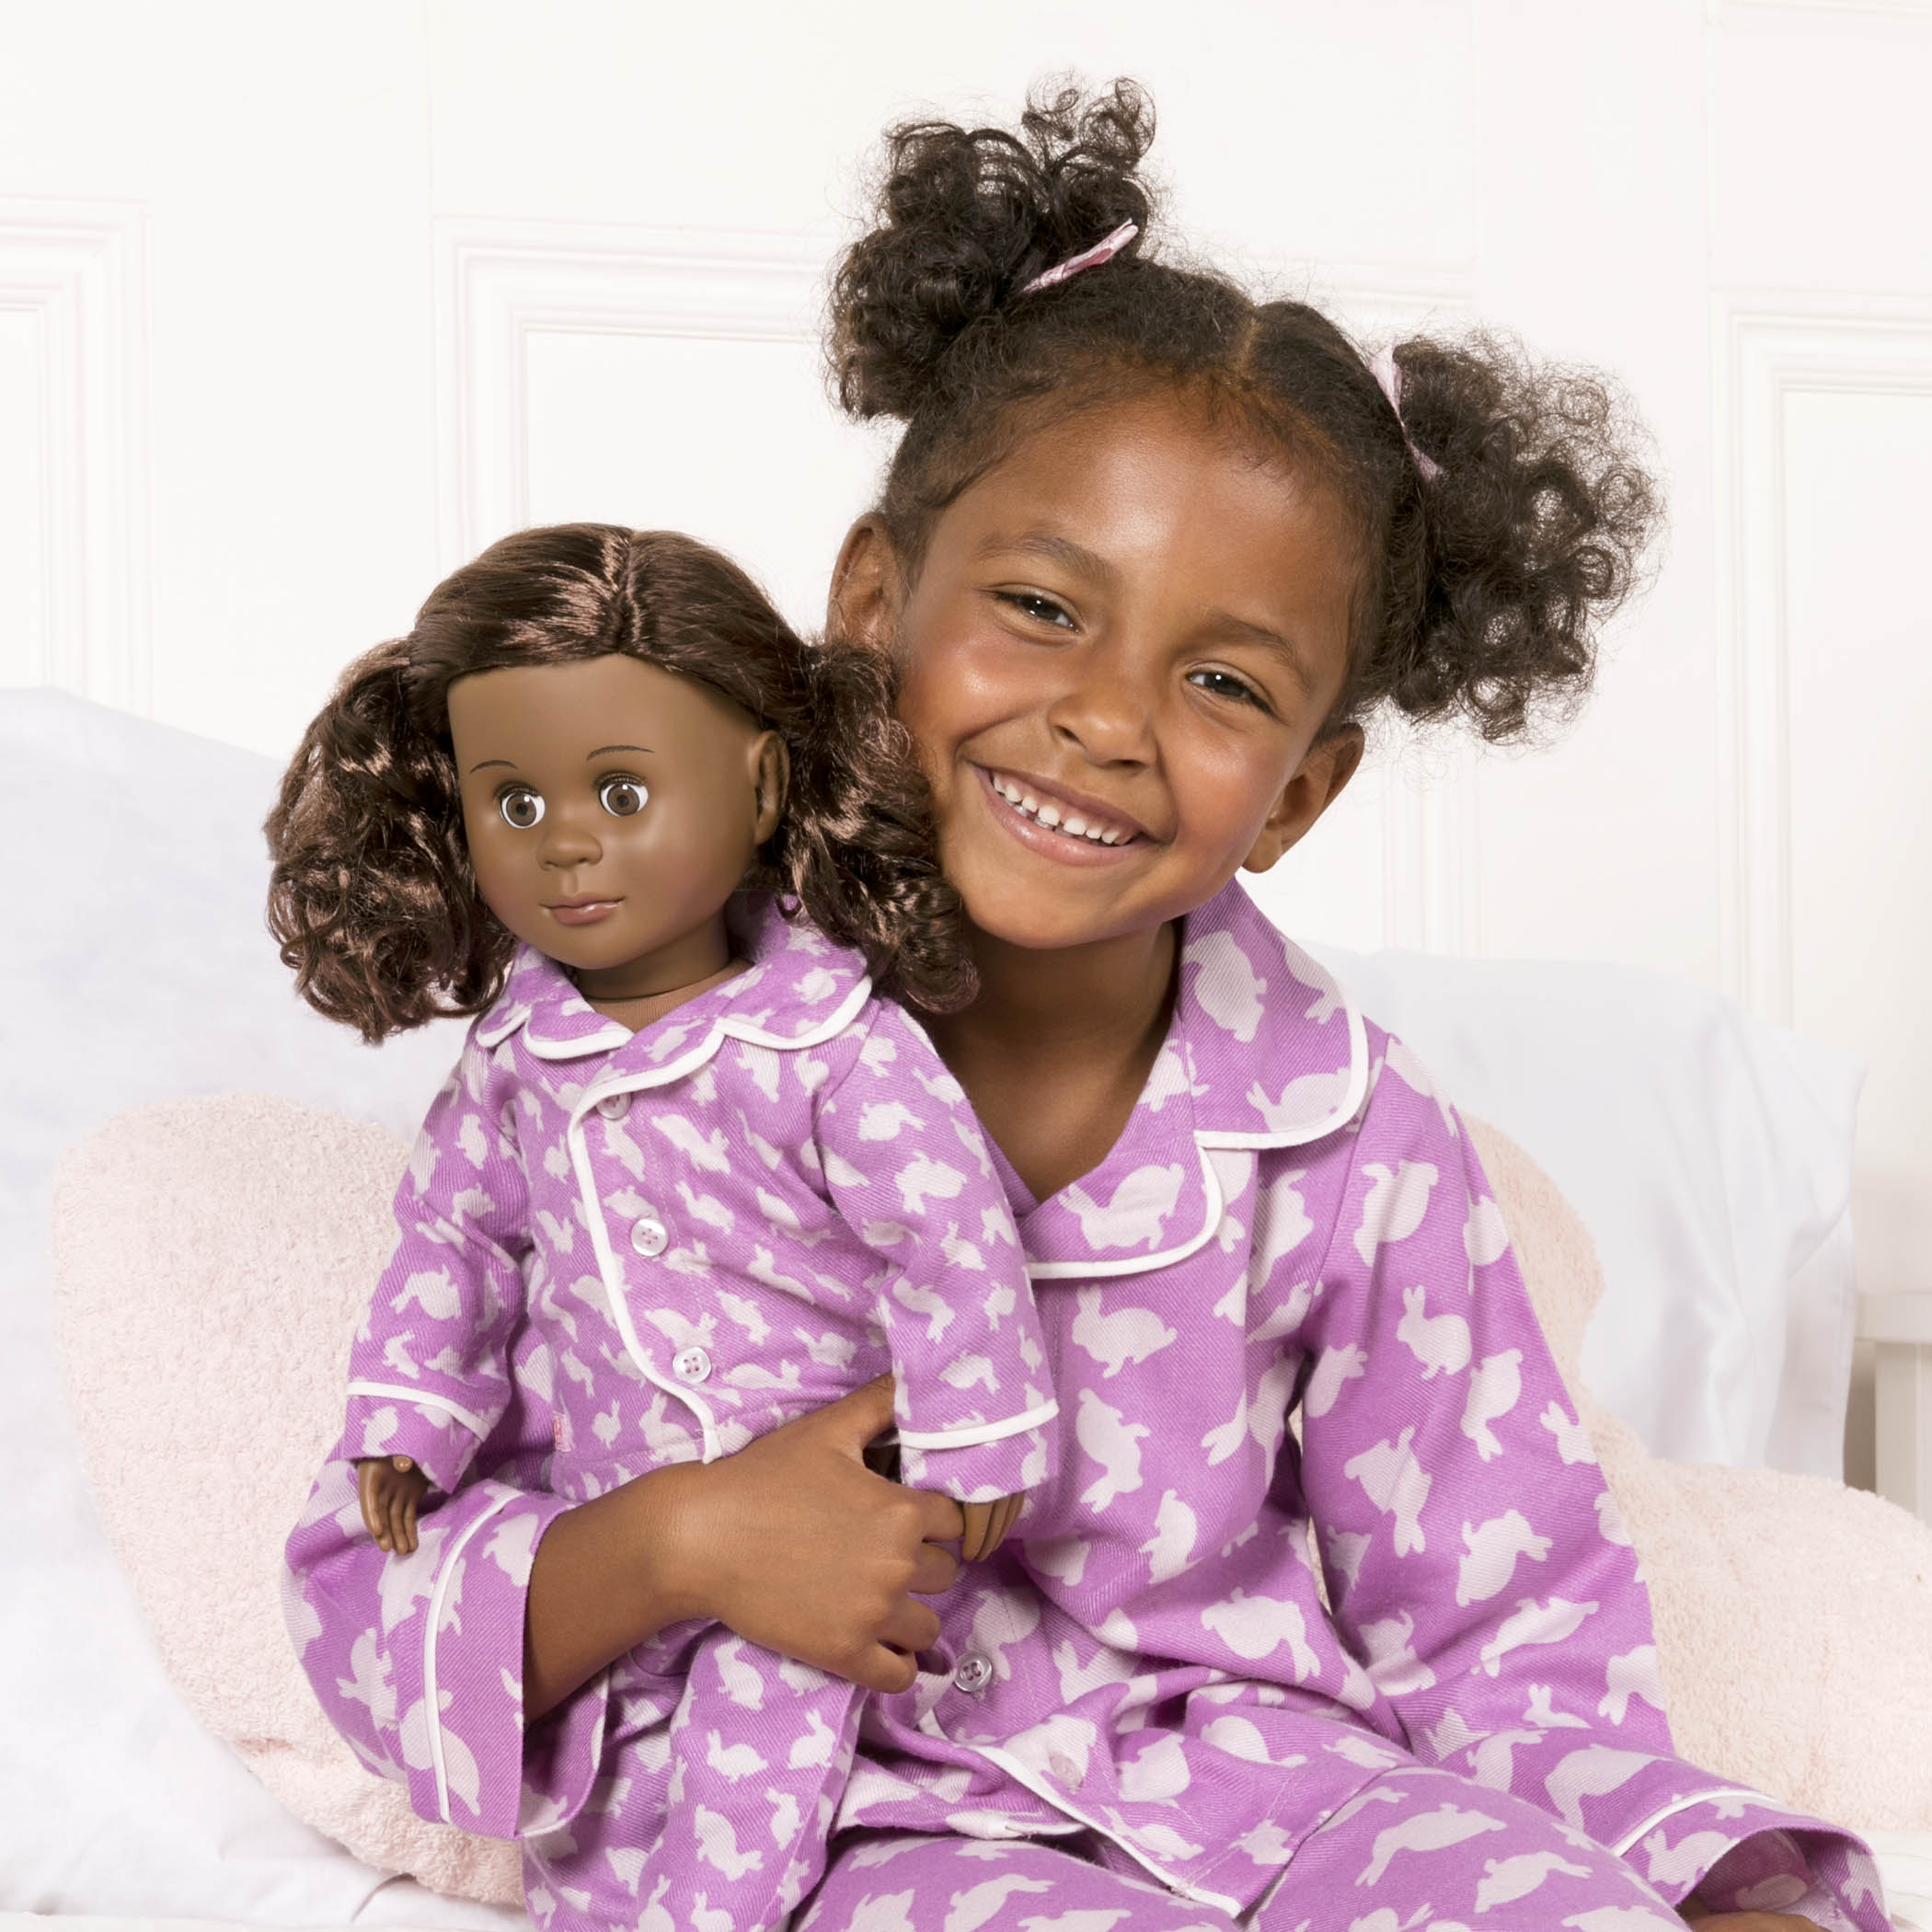 Me and You Bunny Pajamas with girl and Hadia doll